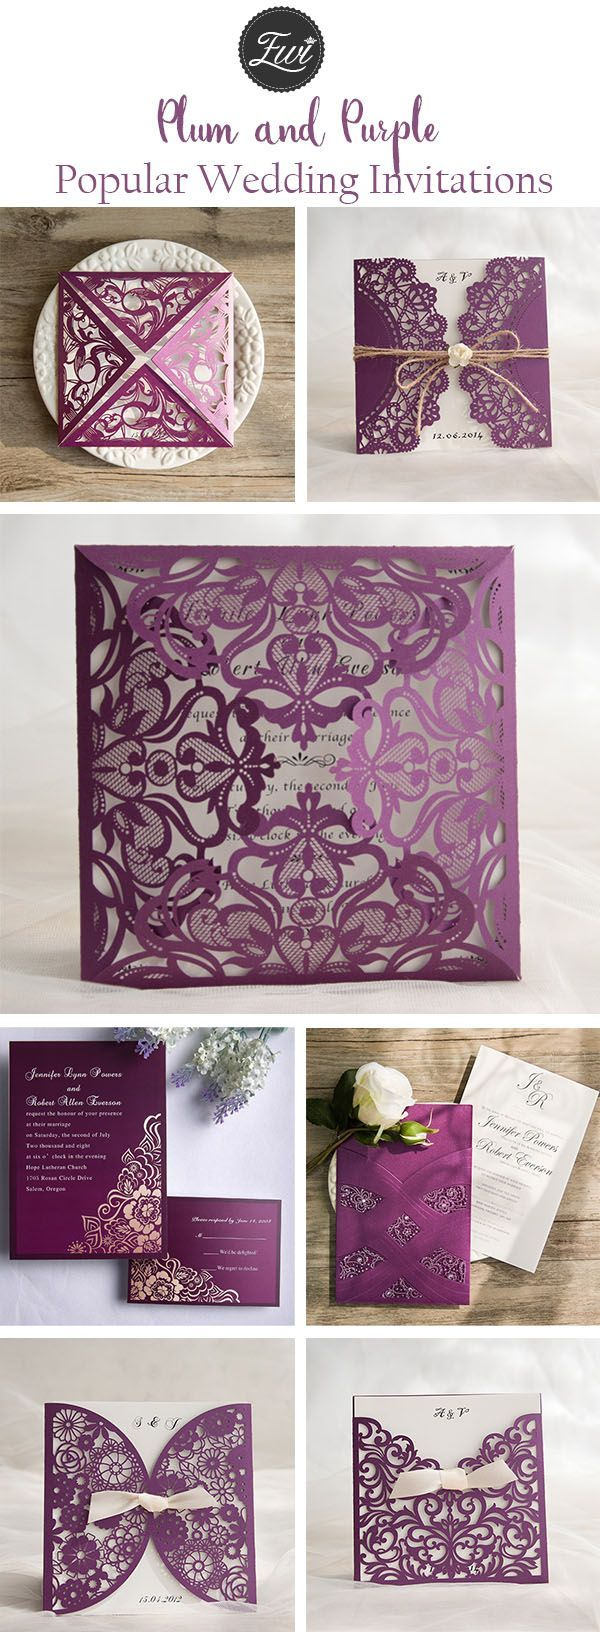 popular plum purple wedding invitations from elegant wedding invites